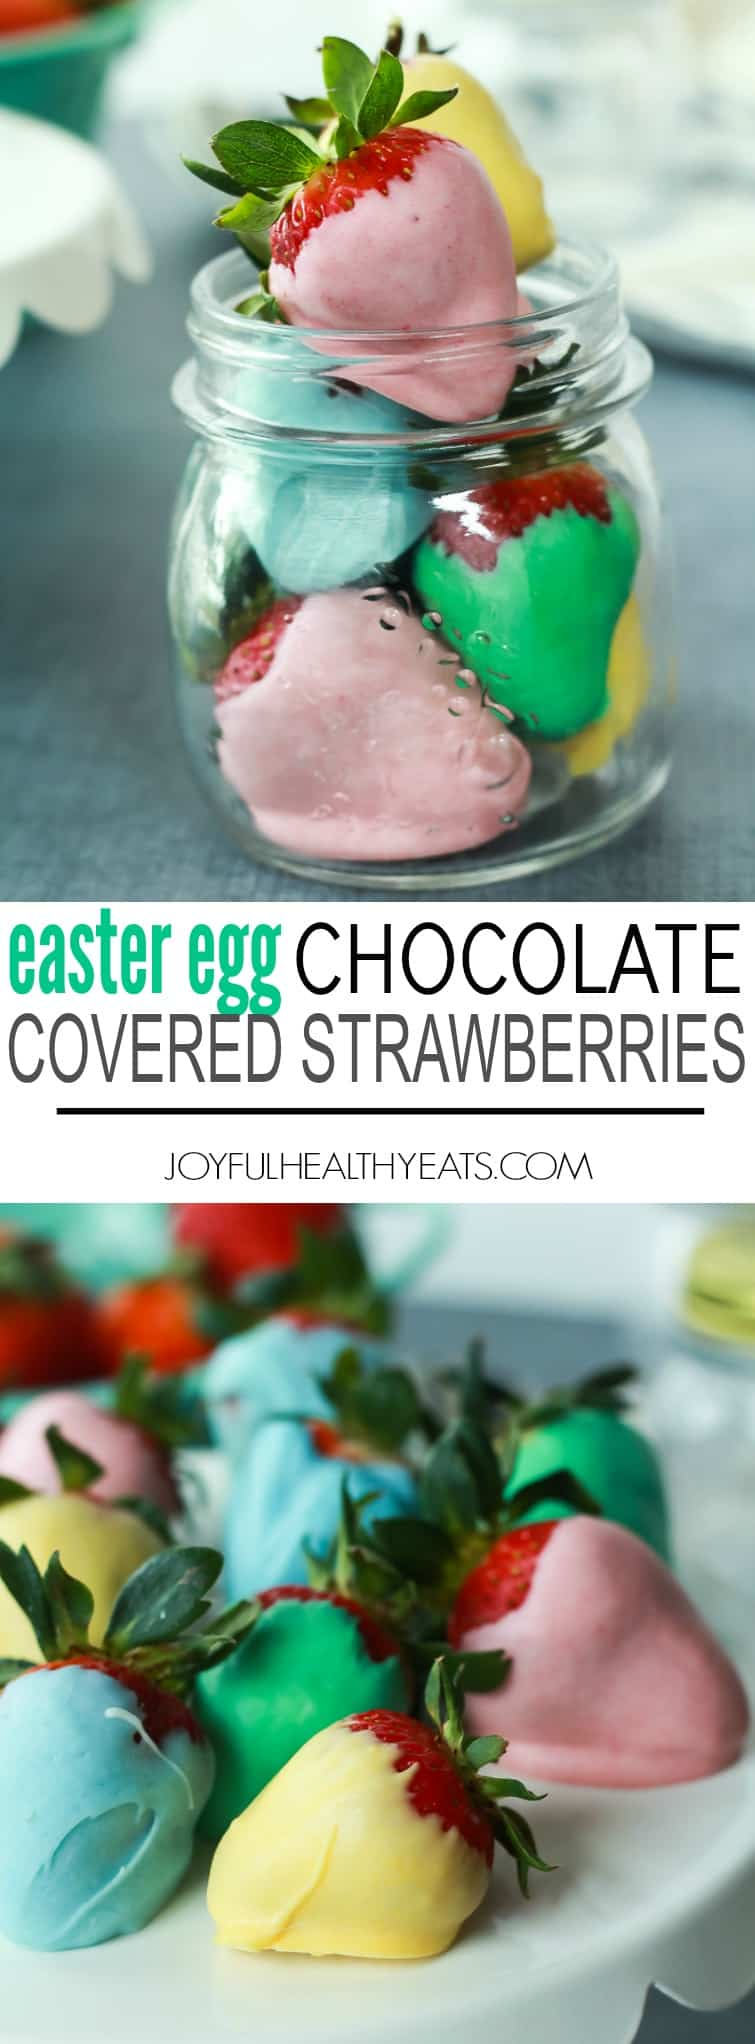 Easter egg chocolate covered strawberries recipe easy healthy recipes easter egg chocolate covered strawberries recipe using three ingredients a fun festive dessert to make forumfinder Images